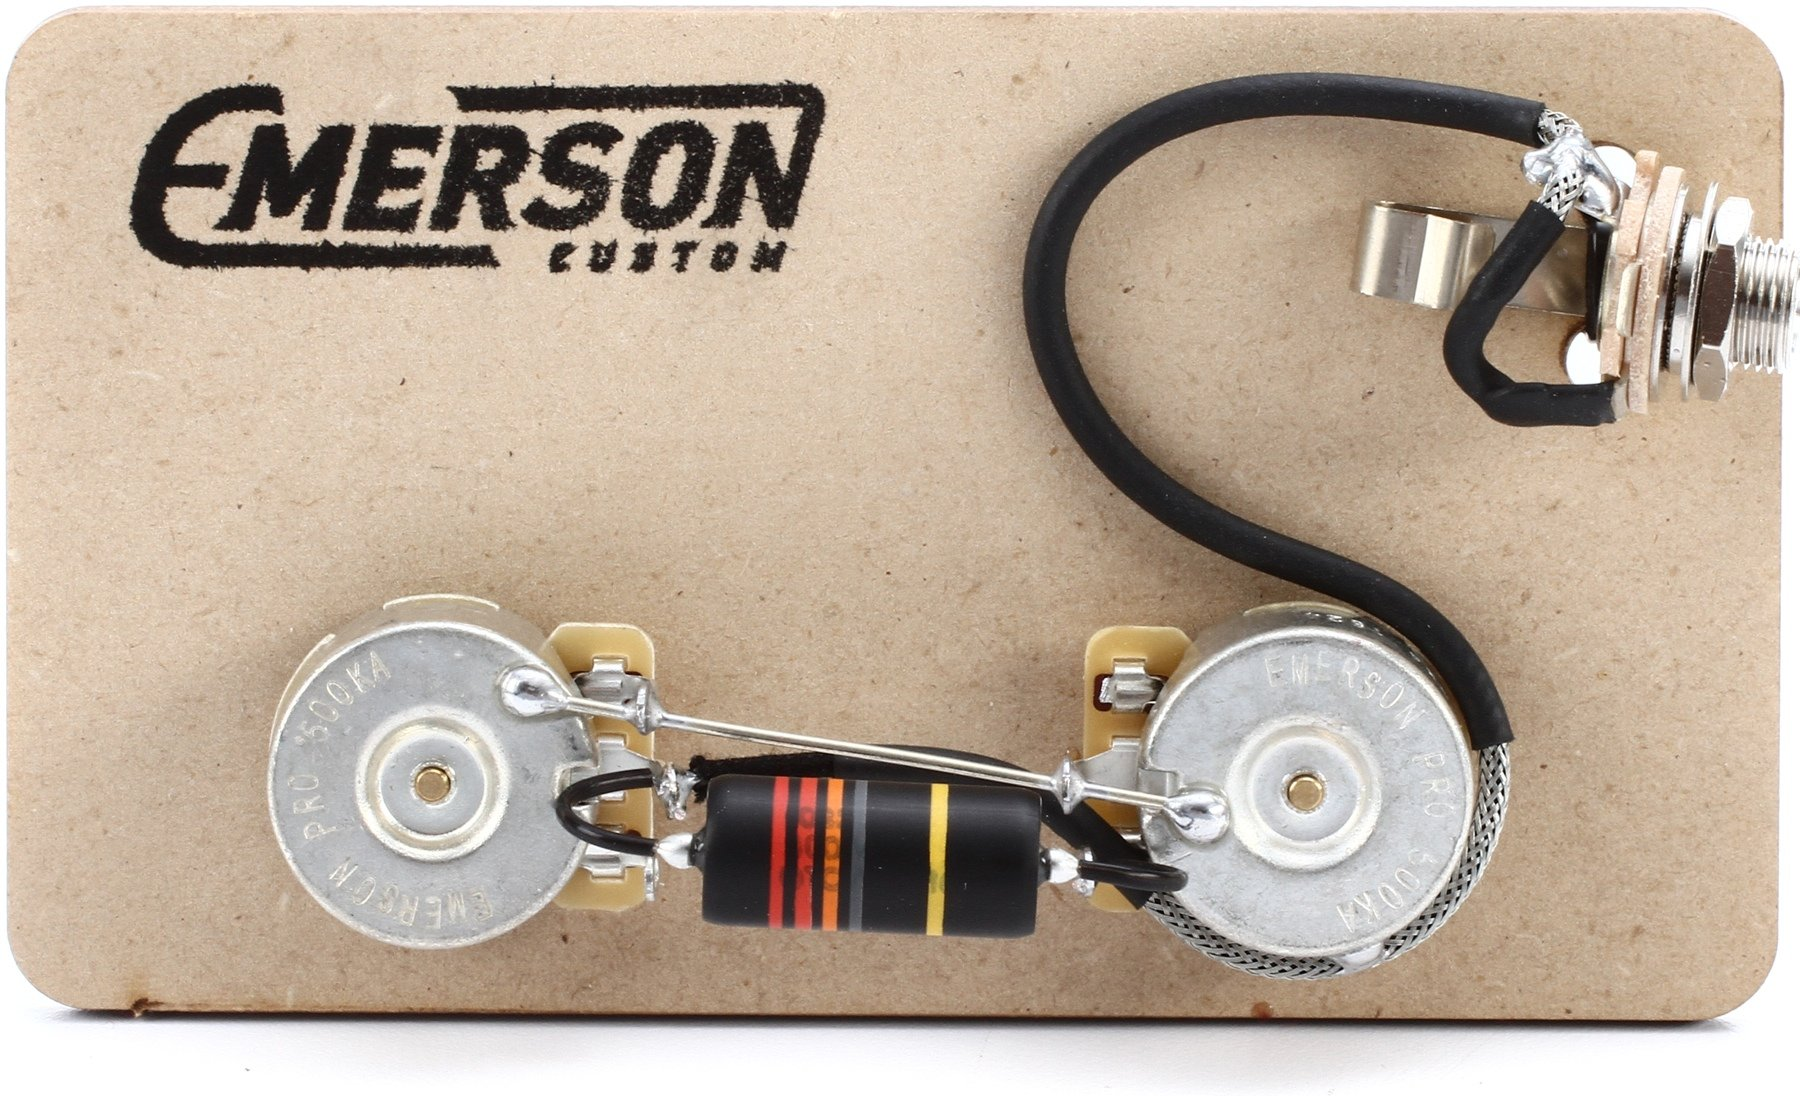 LPBBJR xlarge emerson custom prewired kit for gibson les paul junior sweetwater emerson wiring harness at gsmportal.co